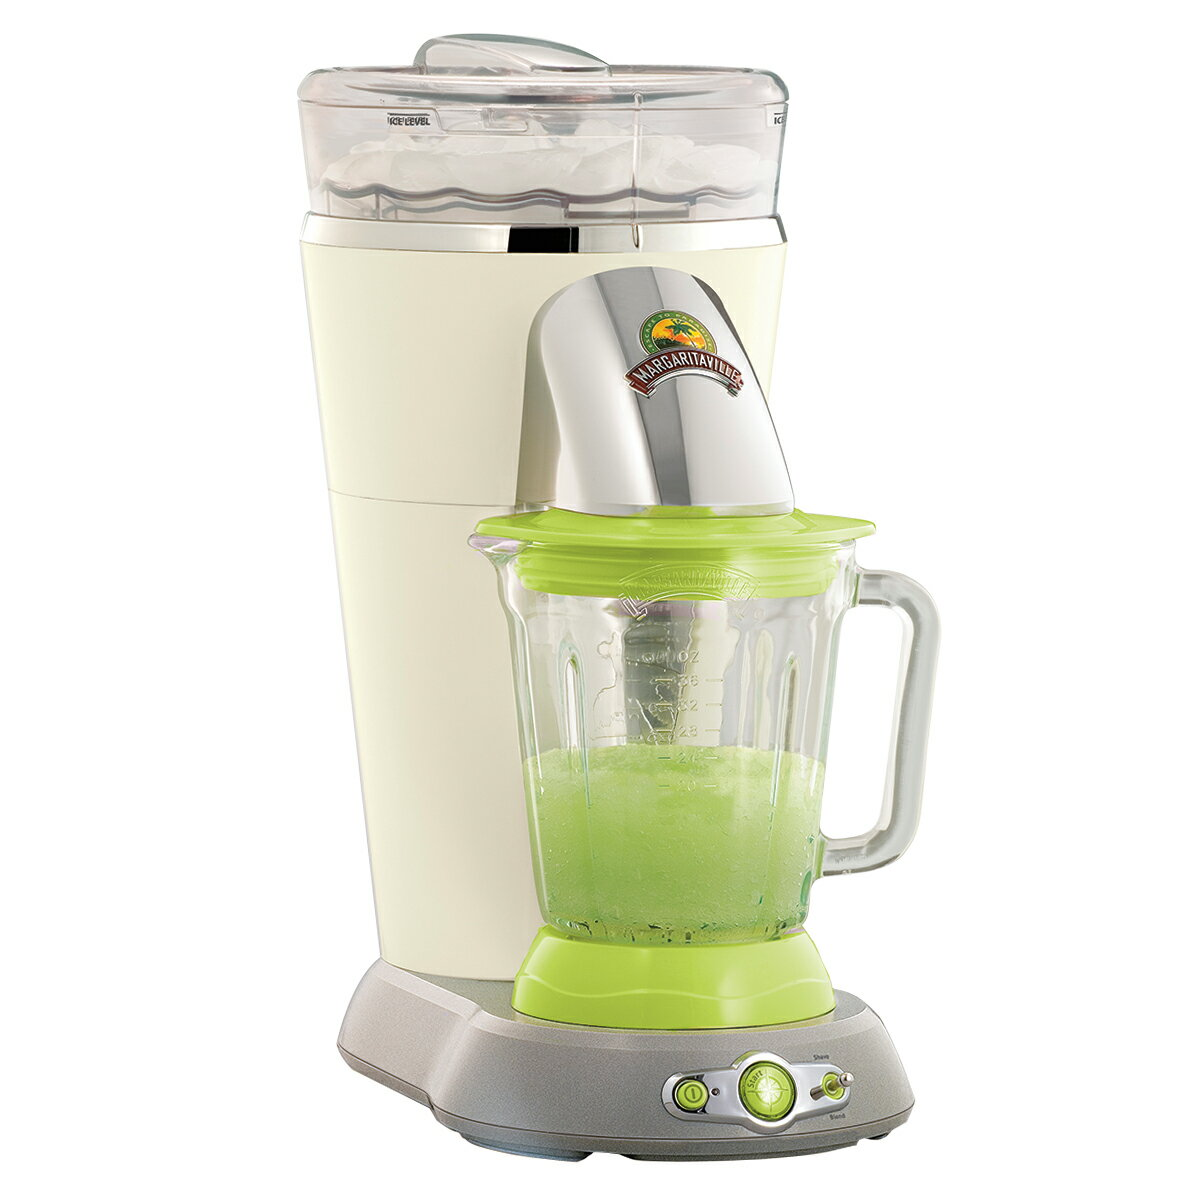 Margaritaville Bahamas™ Frozen Concoction Maker®, Off White & Lime Green DM0500-000-000 0